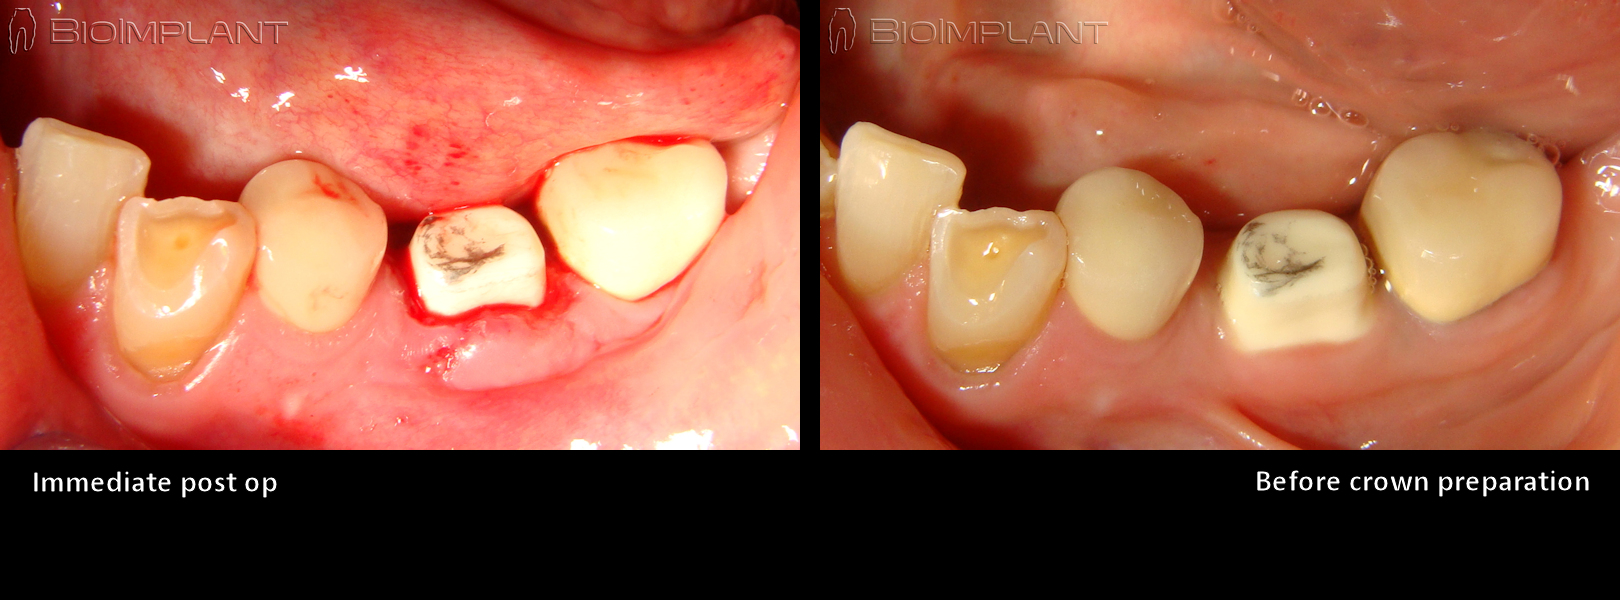 anatomic ceramic dental implant truly anatomic